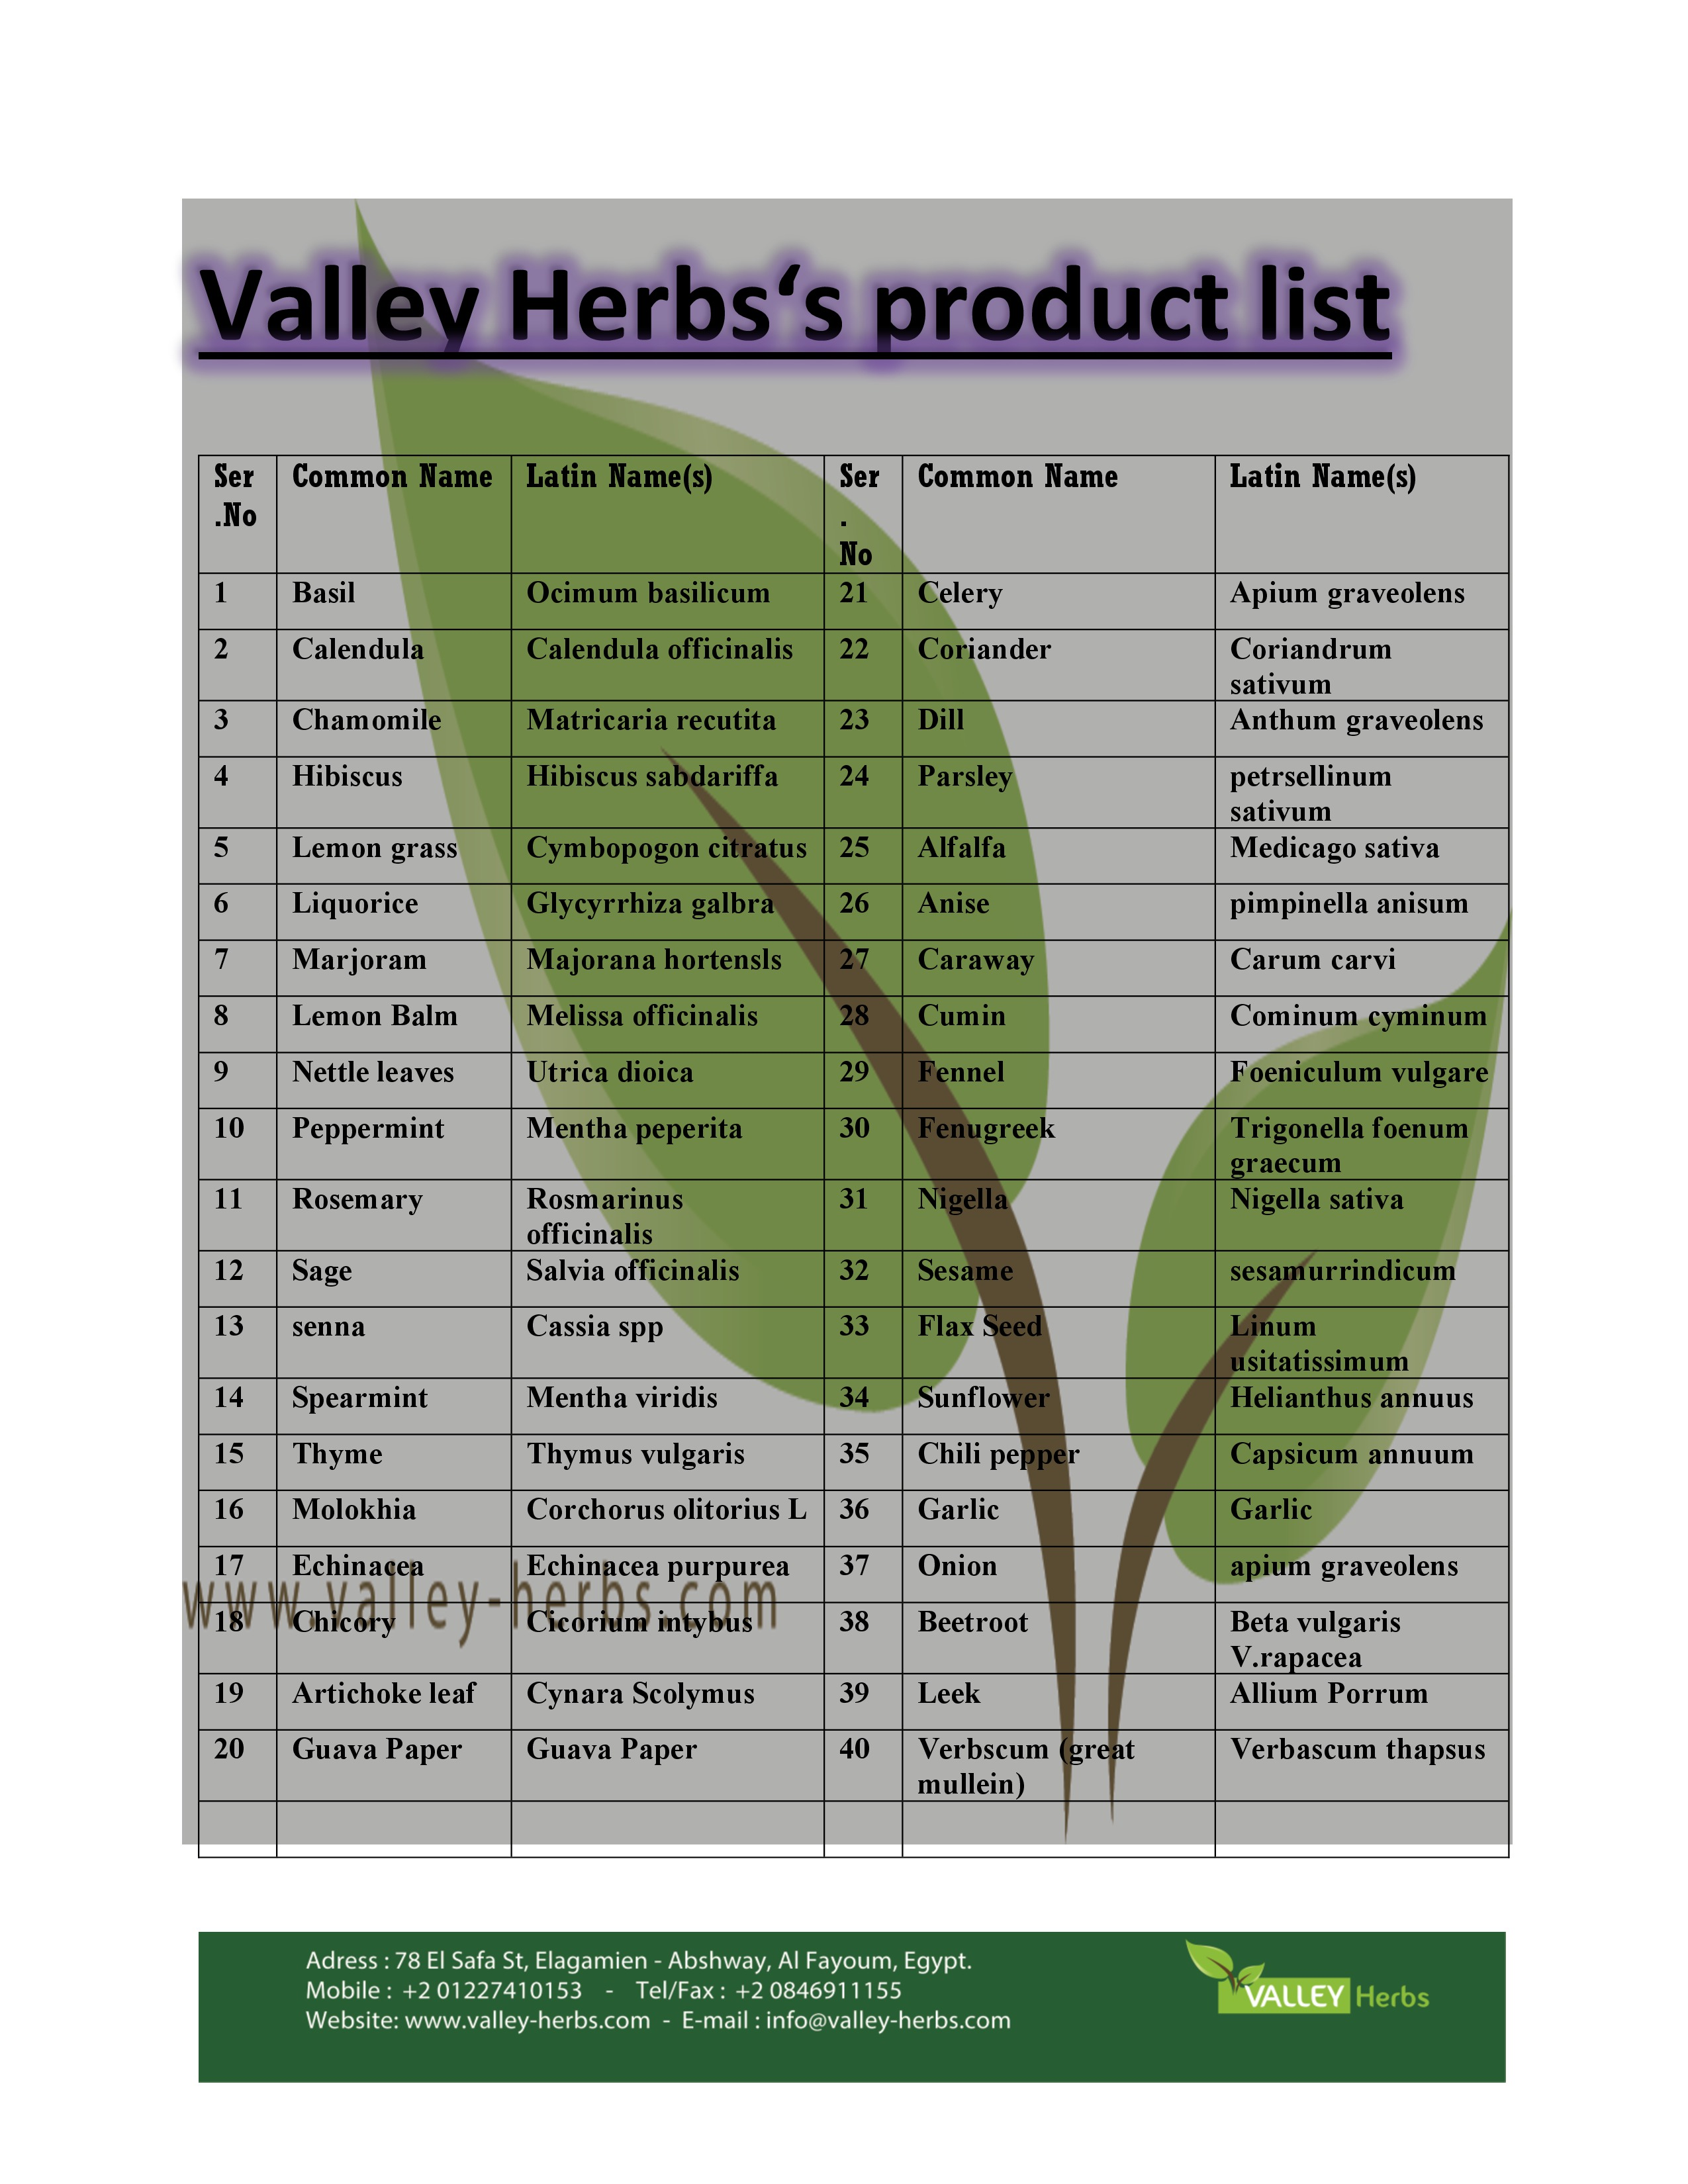 Valley Herbs product list